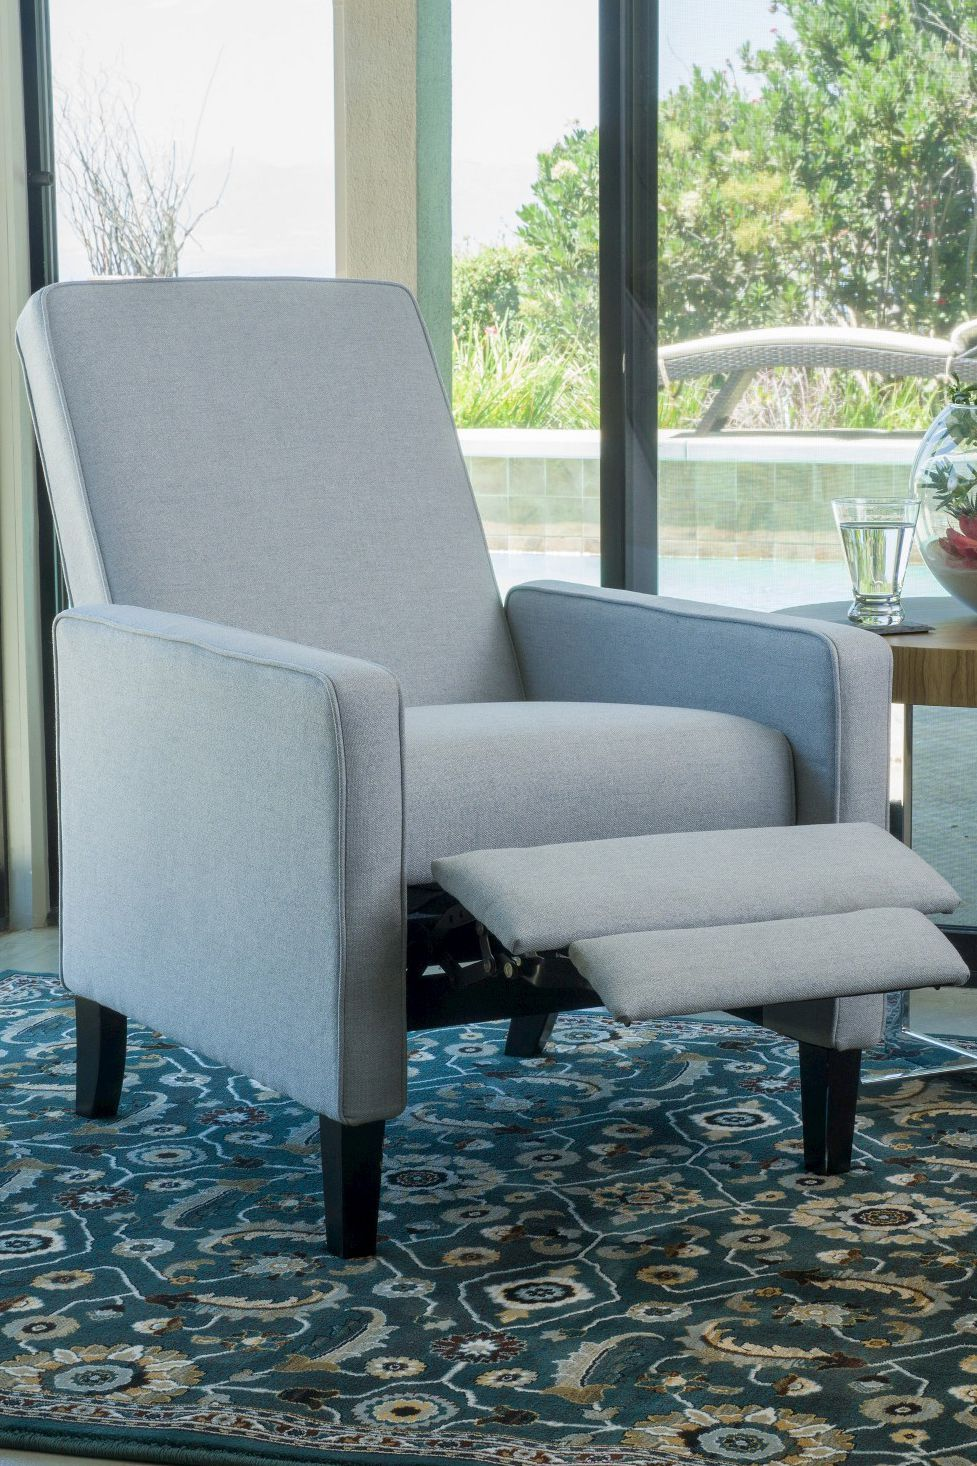 Wayfair S Most Popular Recliner Is On Sale For Just 187 Recliner Chair Stylish Recliners Furniture Chair